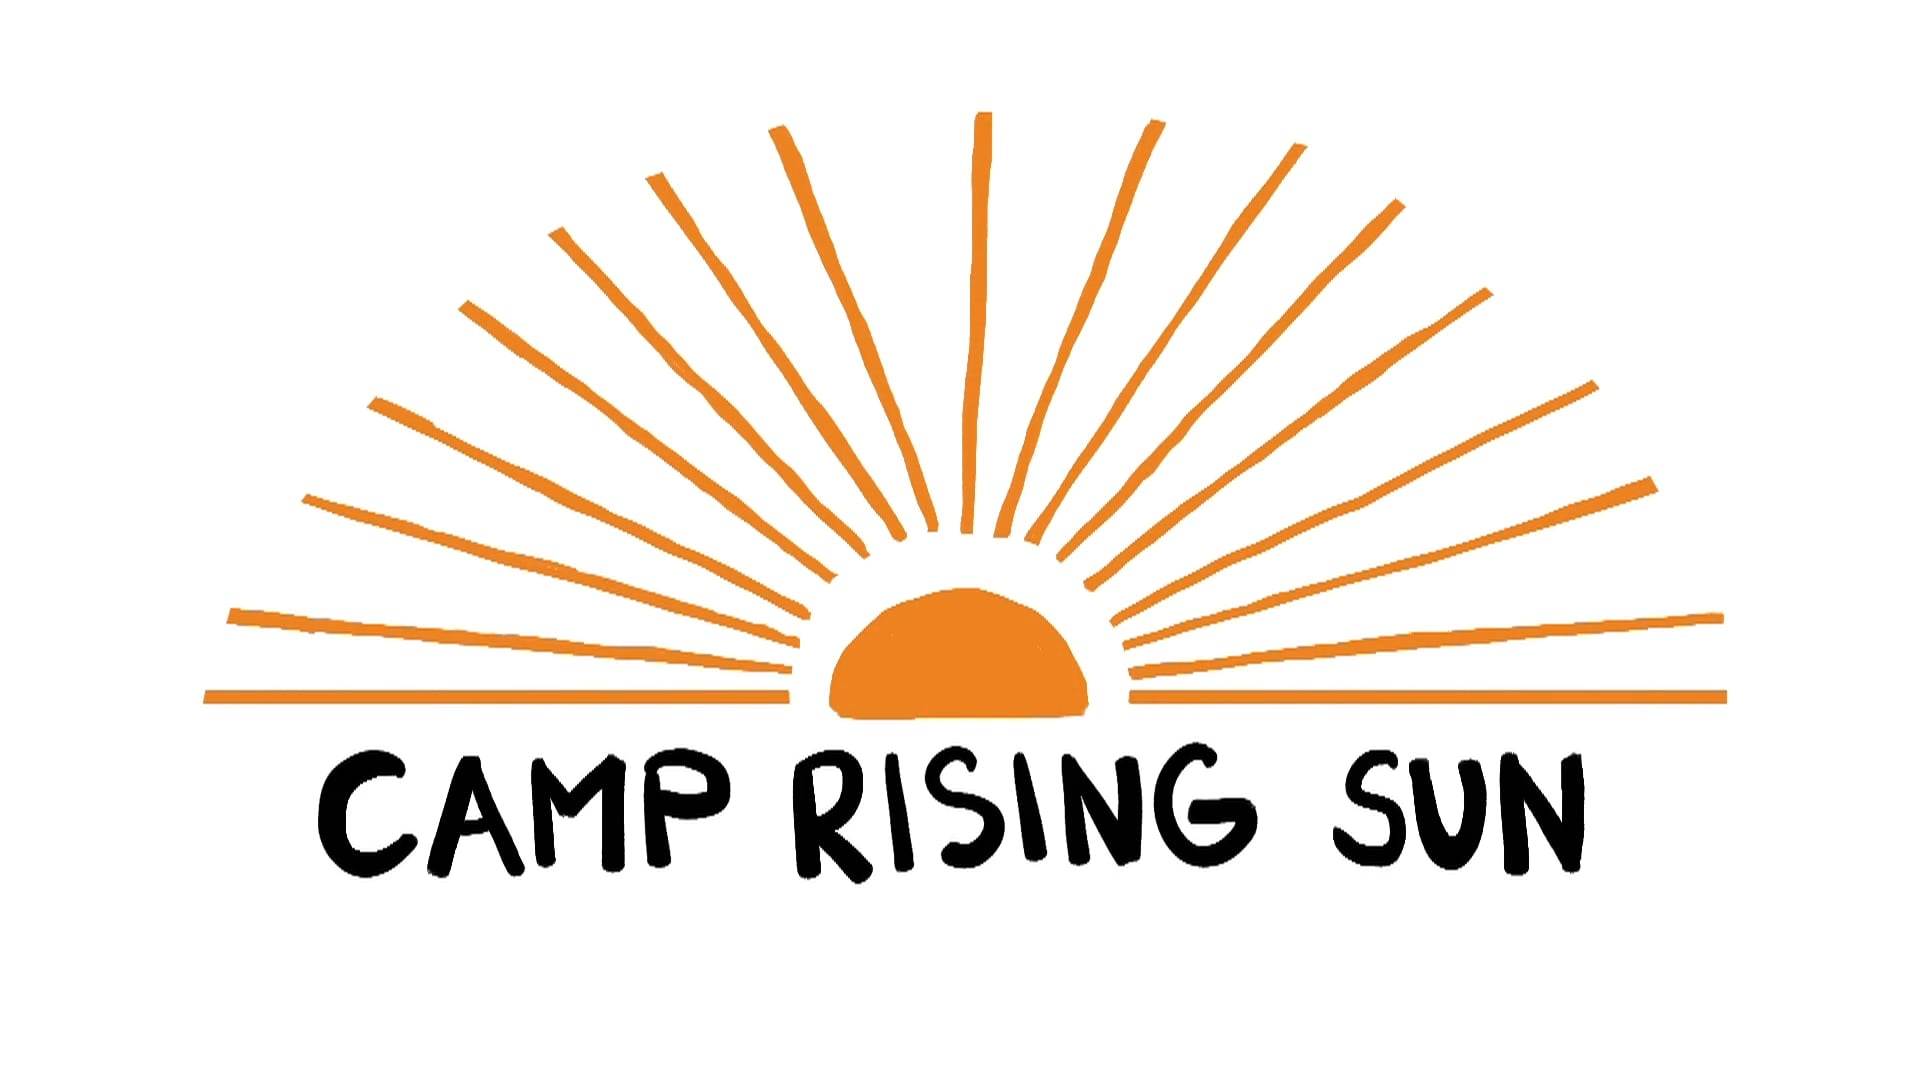 What is Camp Rising Sun?